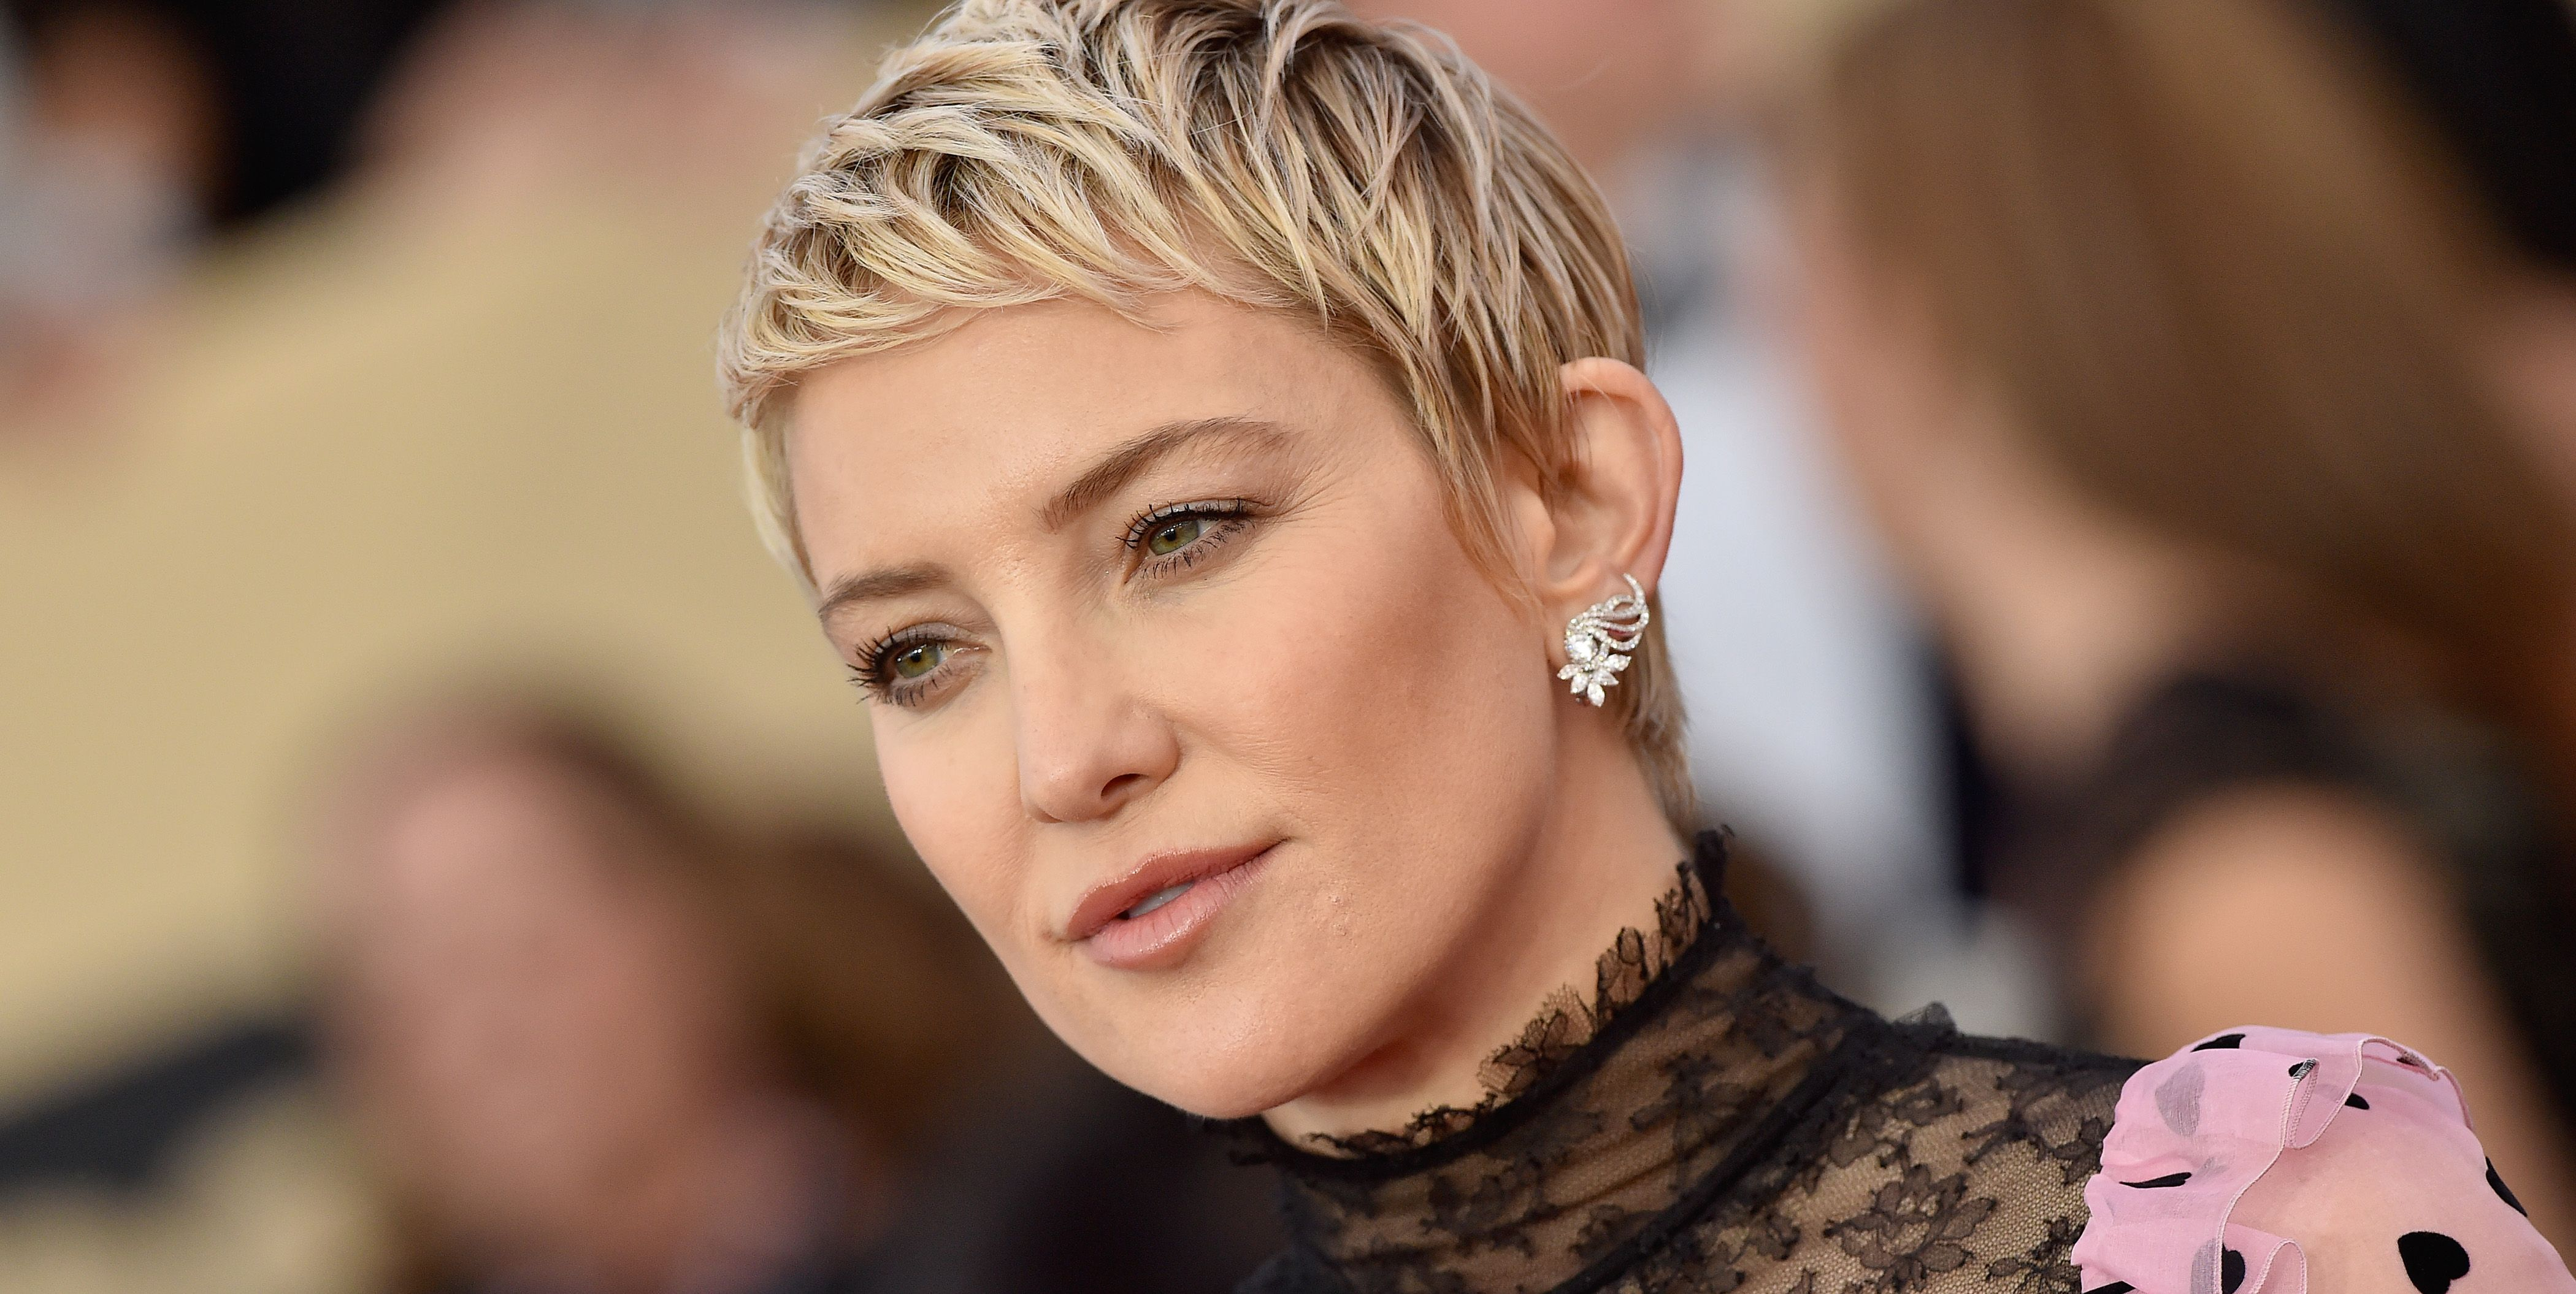 The 30 Best Celebrity Hairstyles Of 2018